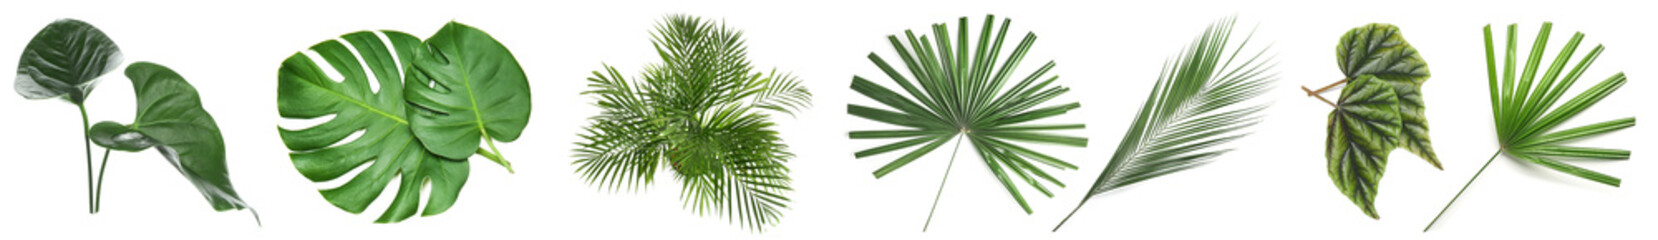 Deurstickers Planten Set of green tropical leaves on white background